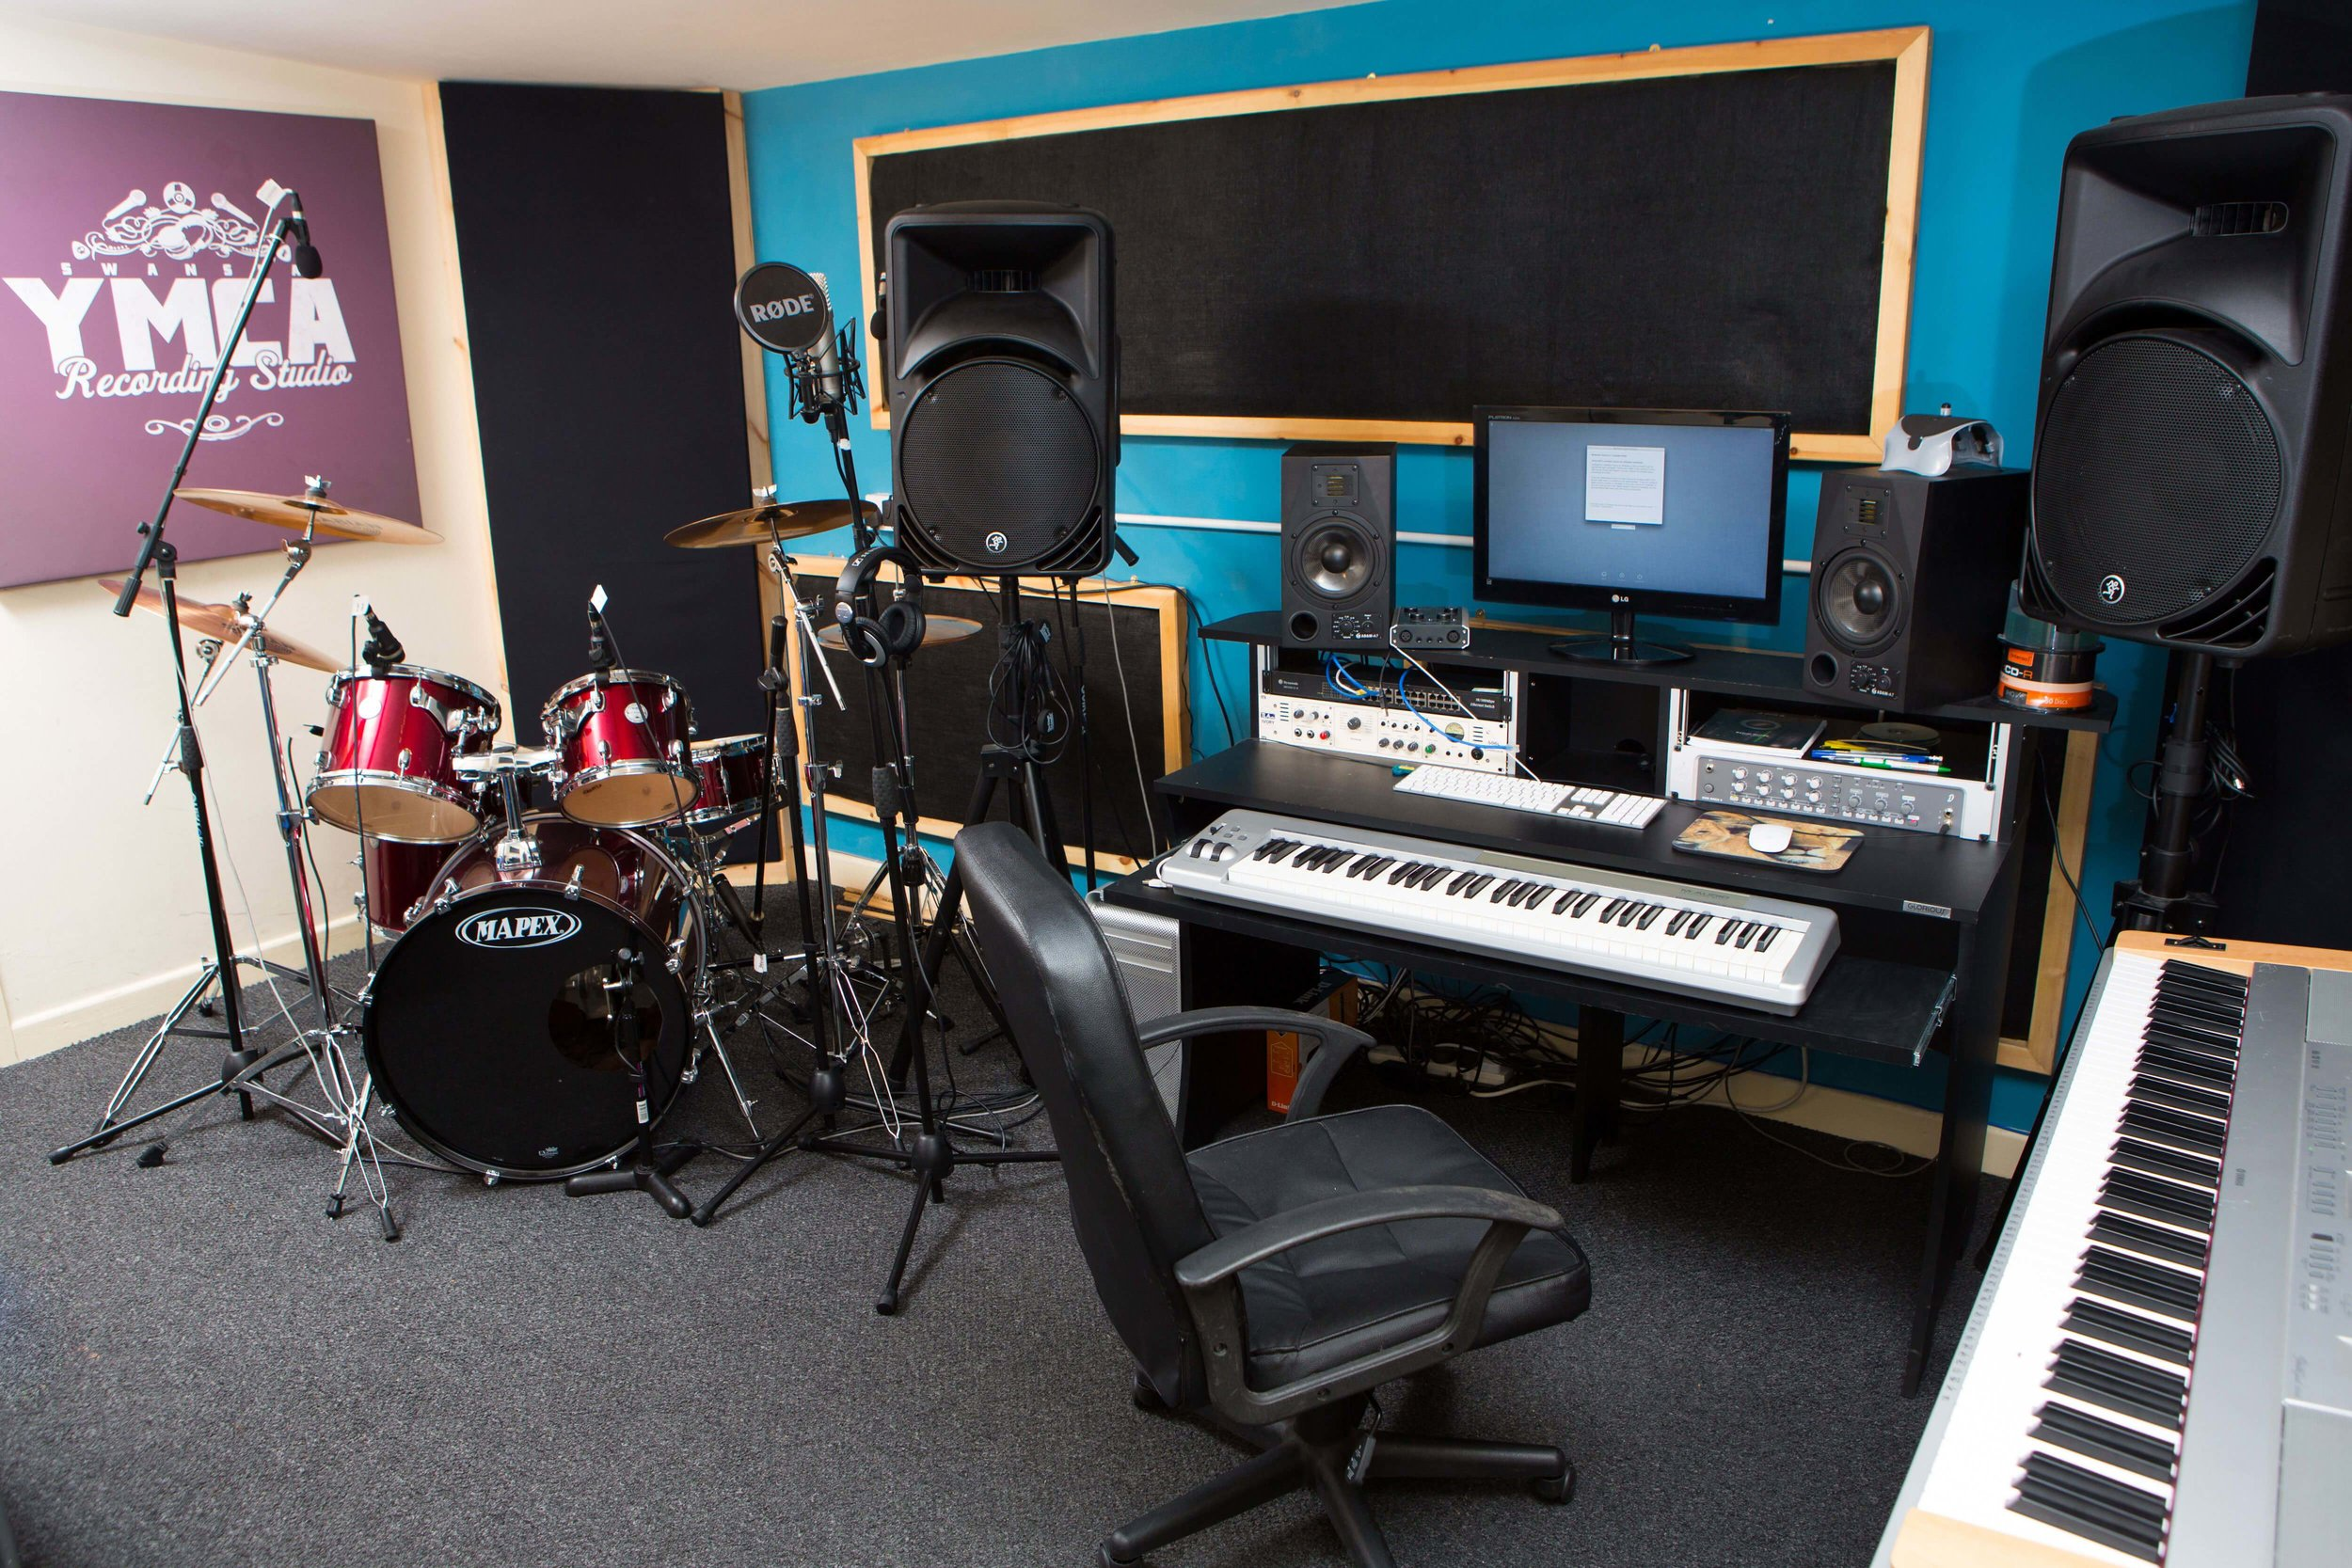 ymca - rehearsal rooms / recording studio